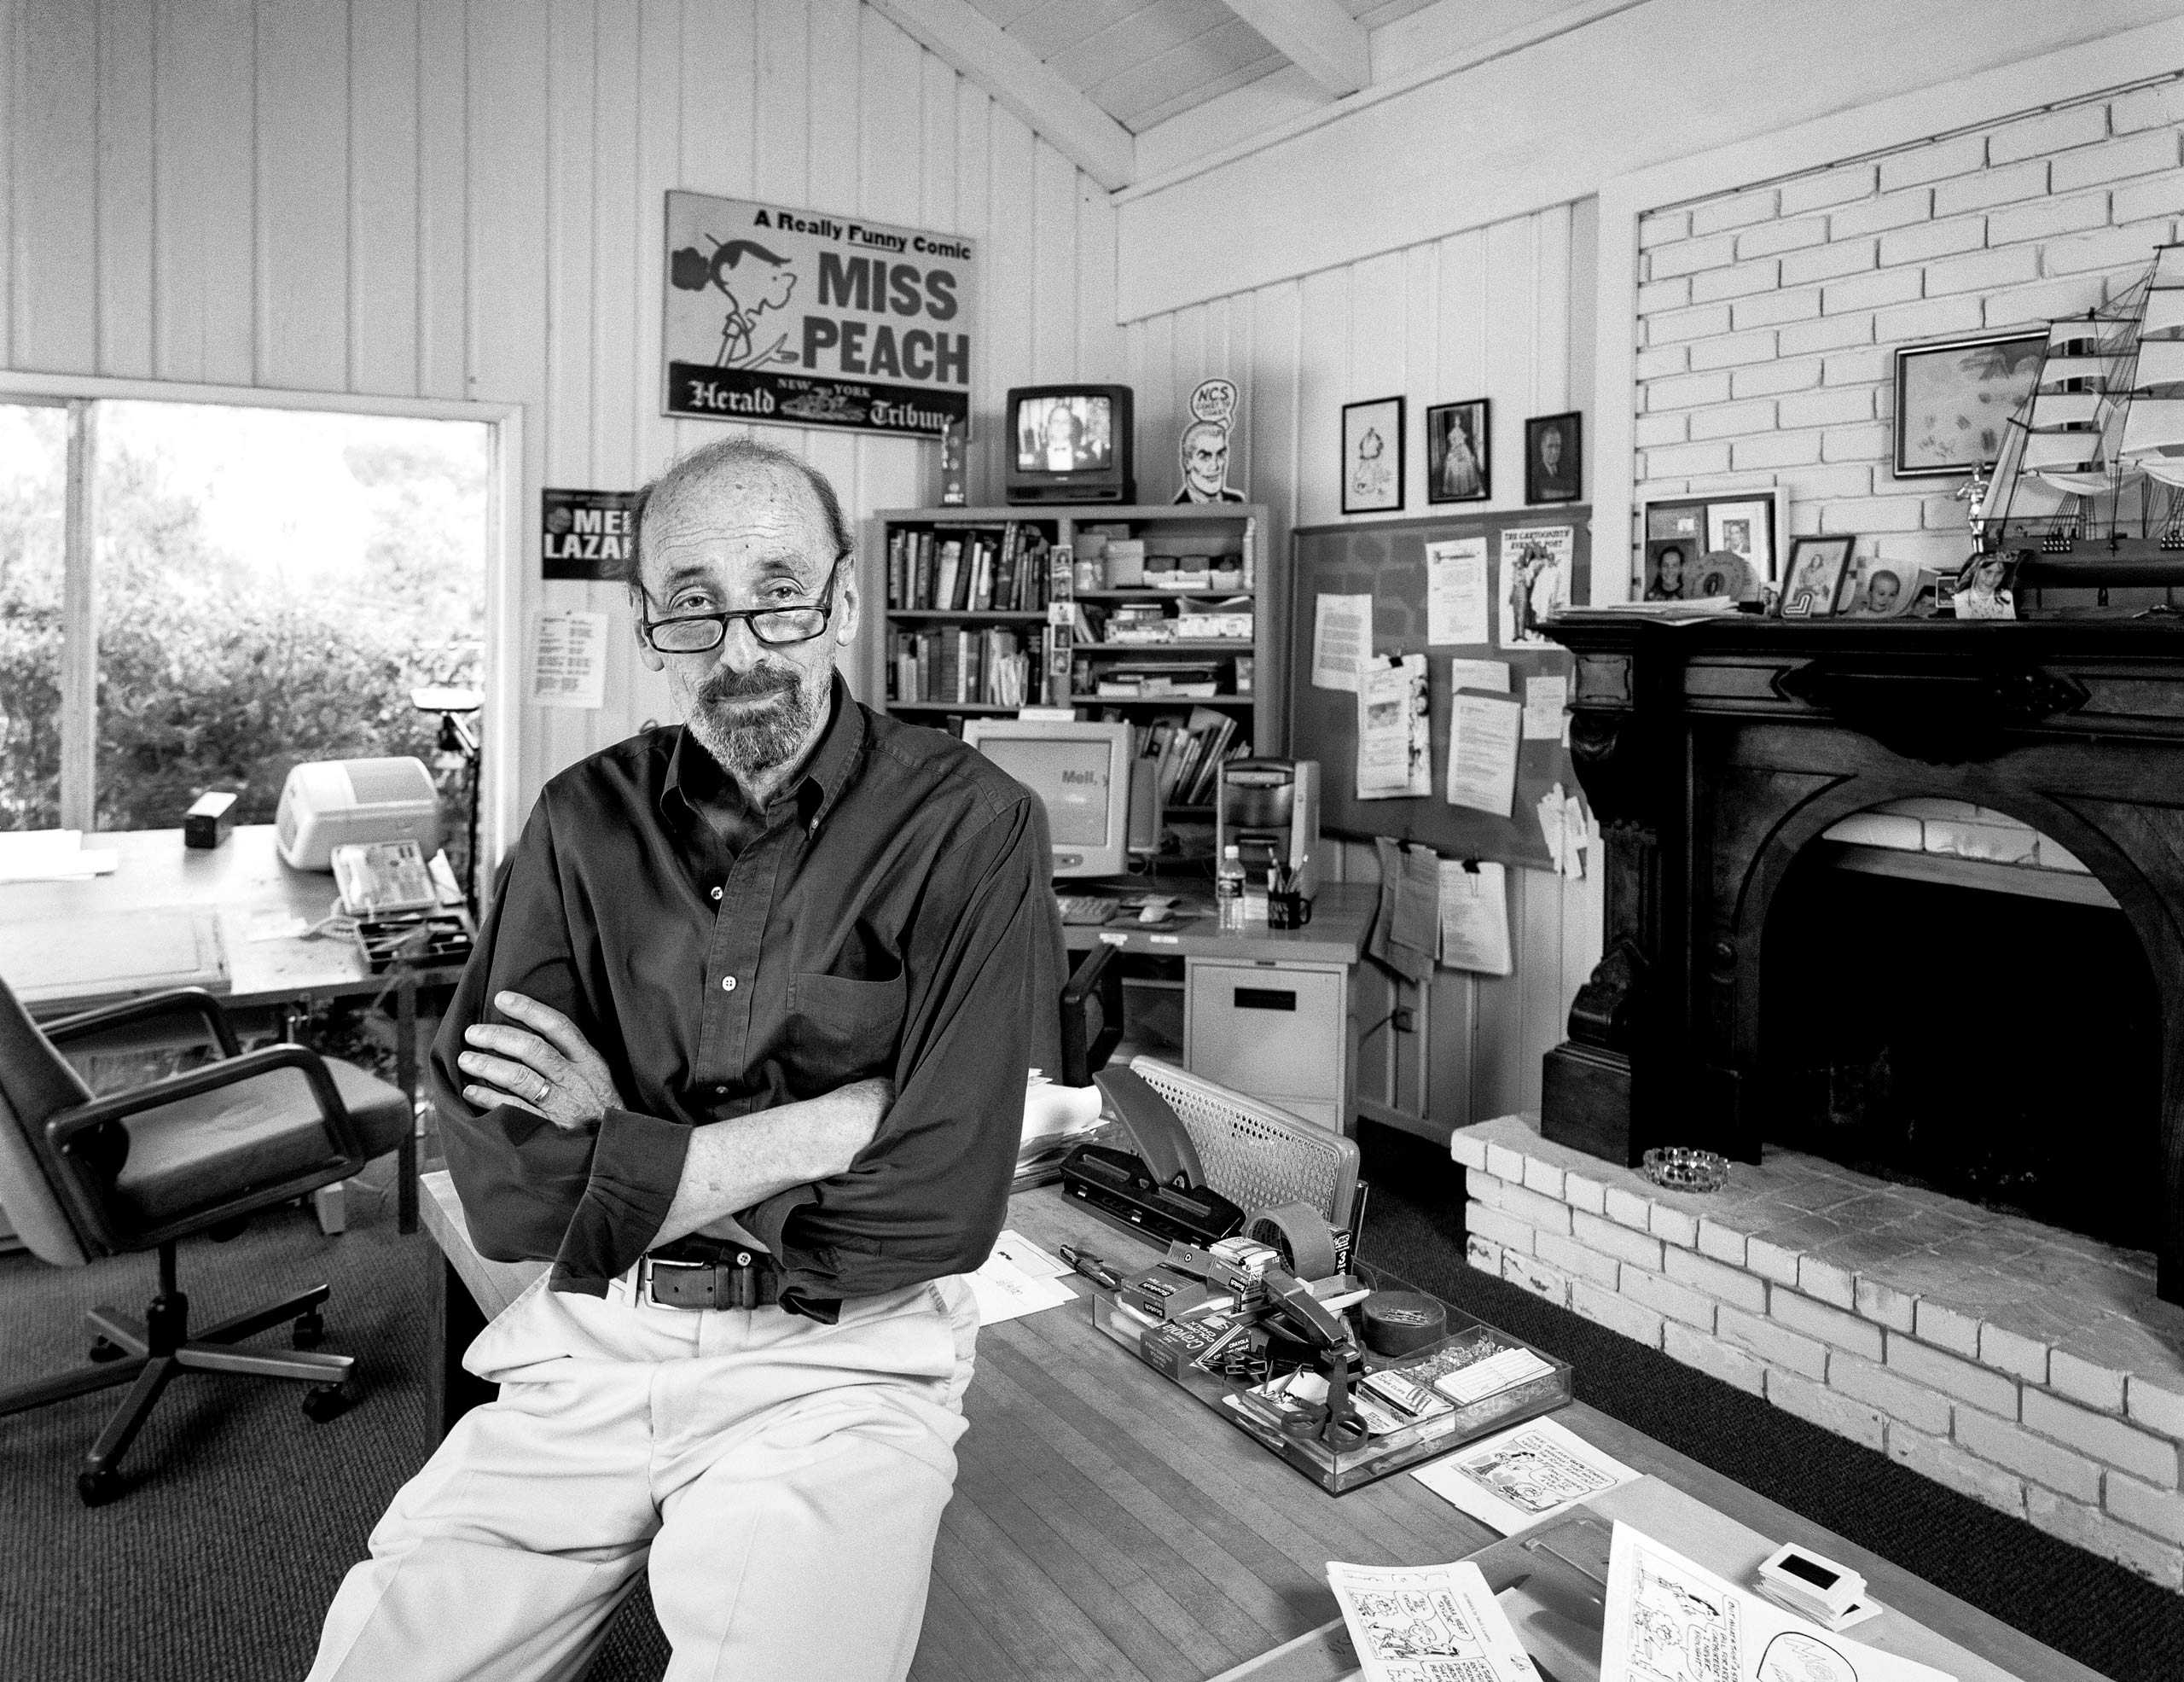 """Cartoonist And Author Mell Lazarus photographed for """"The Artist Within"""""""